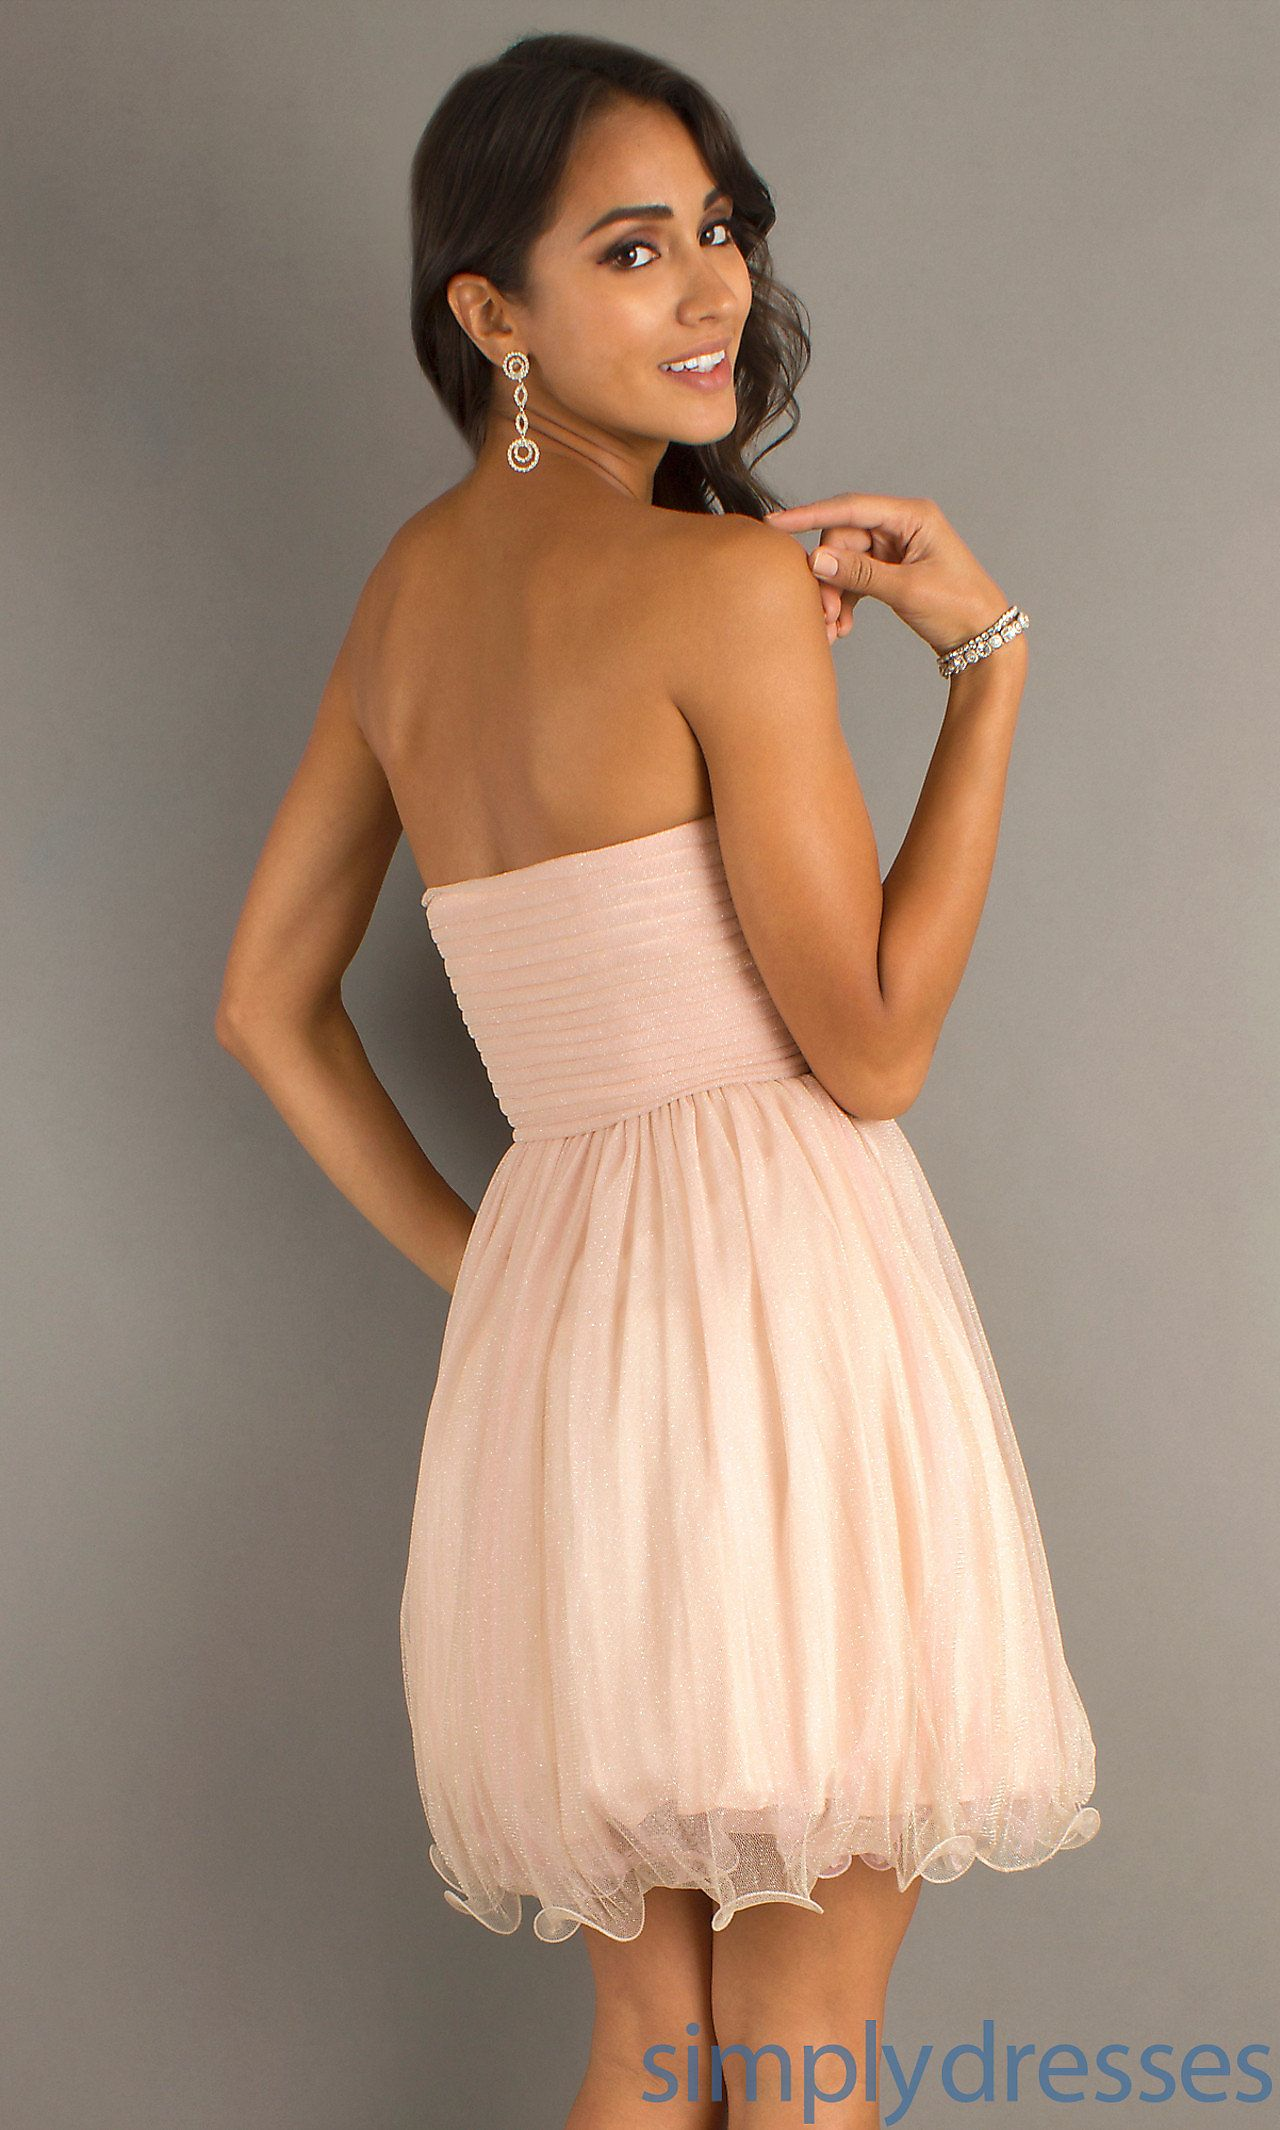 Short strapless prom dresses pink short dresses simply dresses